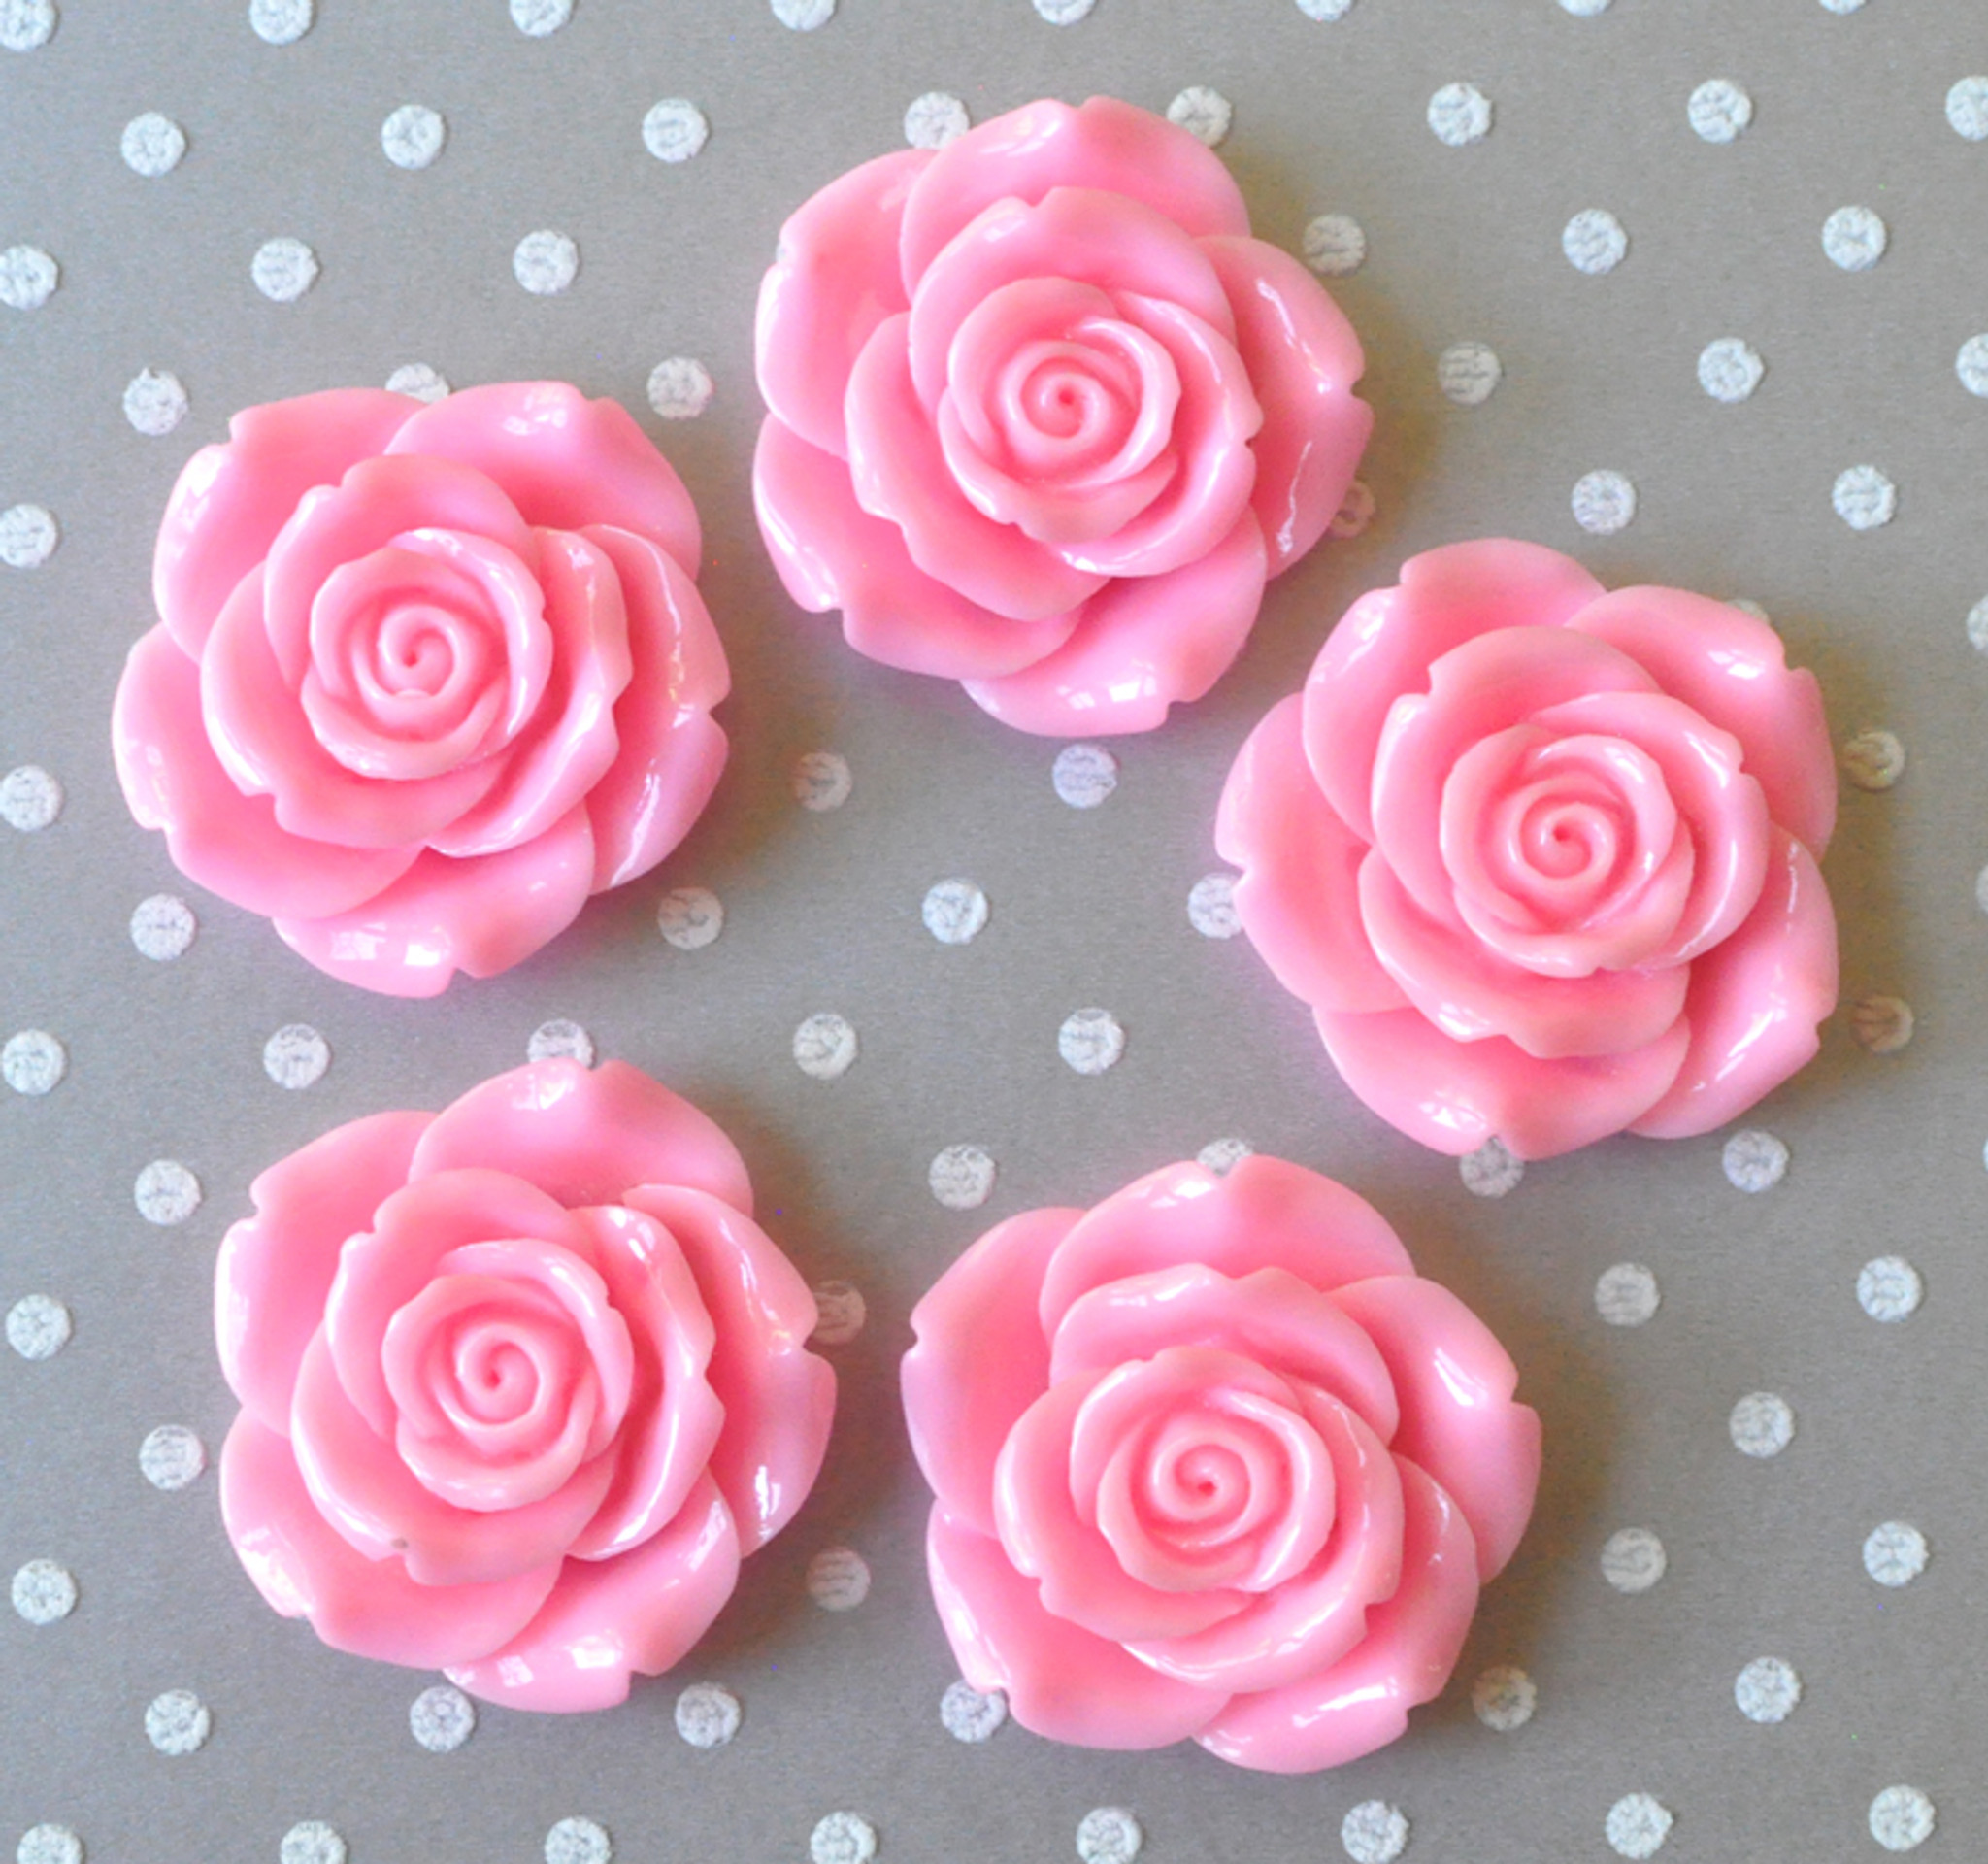 42mm Pink resin flower beads for chunky necklaces